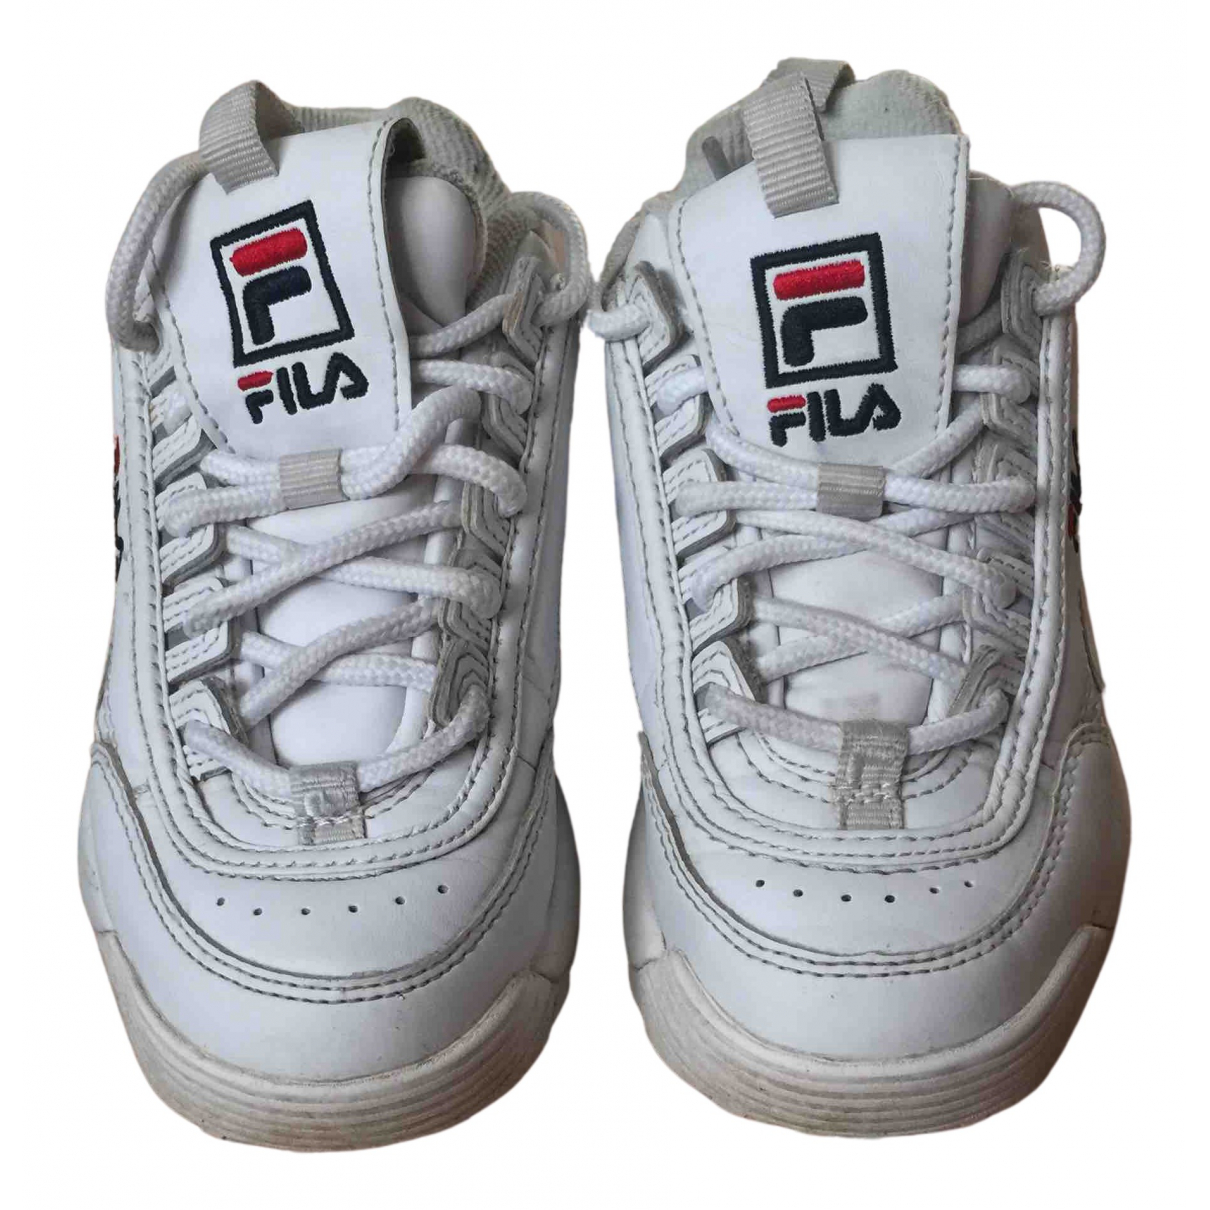 Fila N White Leather Trainers for Kids 31 FR